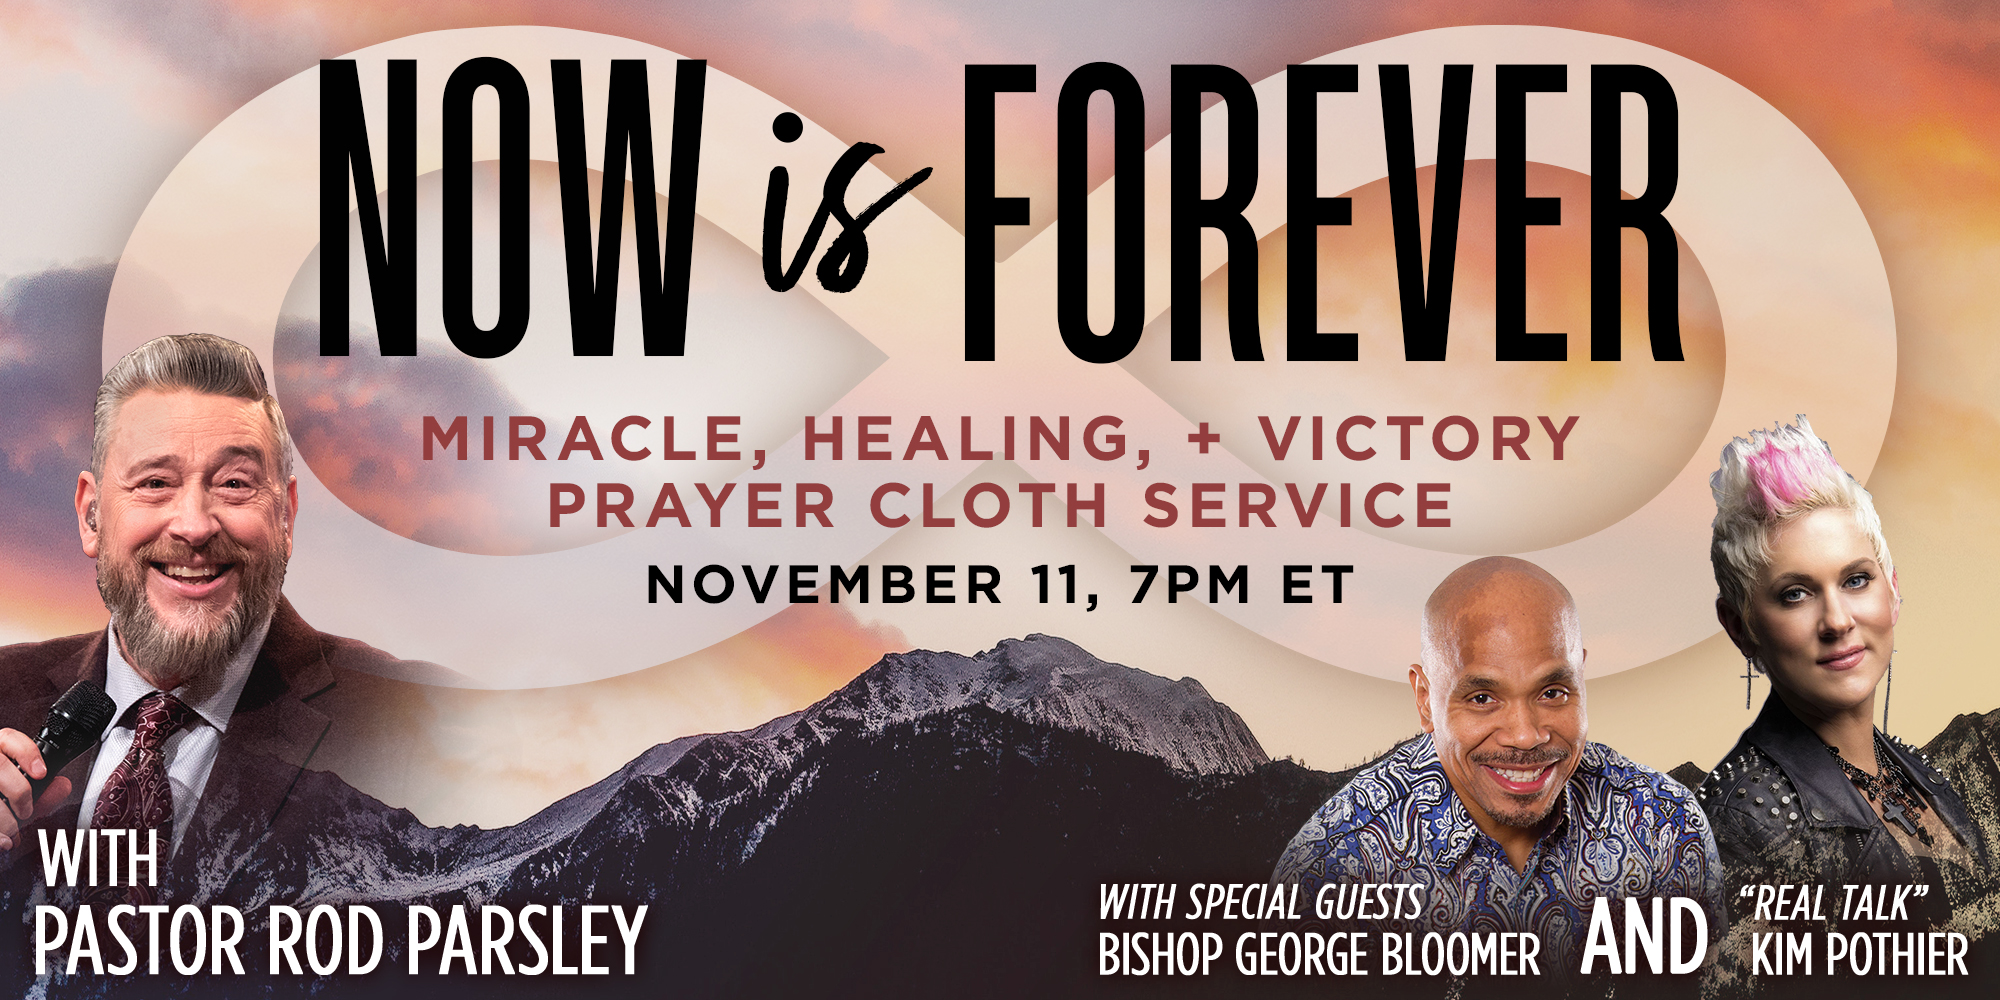 NOW IS FOREVER | MIRACLE, HEALING & PRAYER CLOTH SERVICE | NOVEMBER 11, 7PM ET | WITH PASTOR ROD PARSLEY | WITH SPECIAL GUESTS | BISHOP GEORGE BLOOMER & -REAL TALK- KIM POTHIER